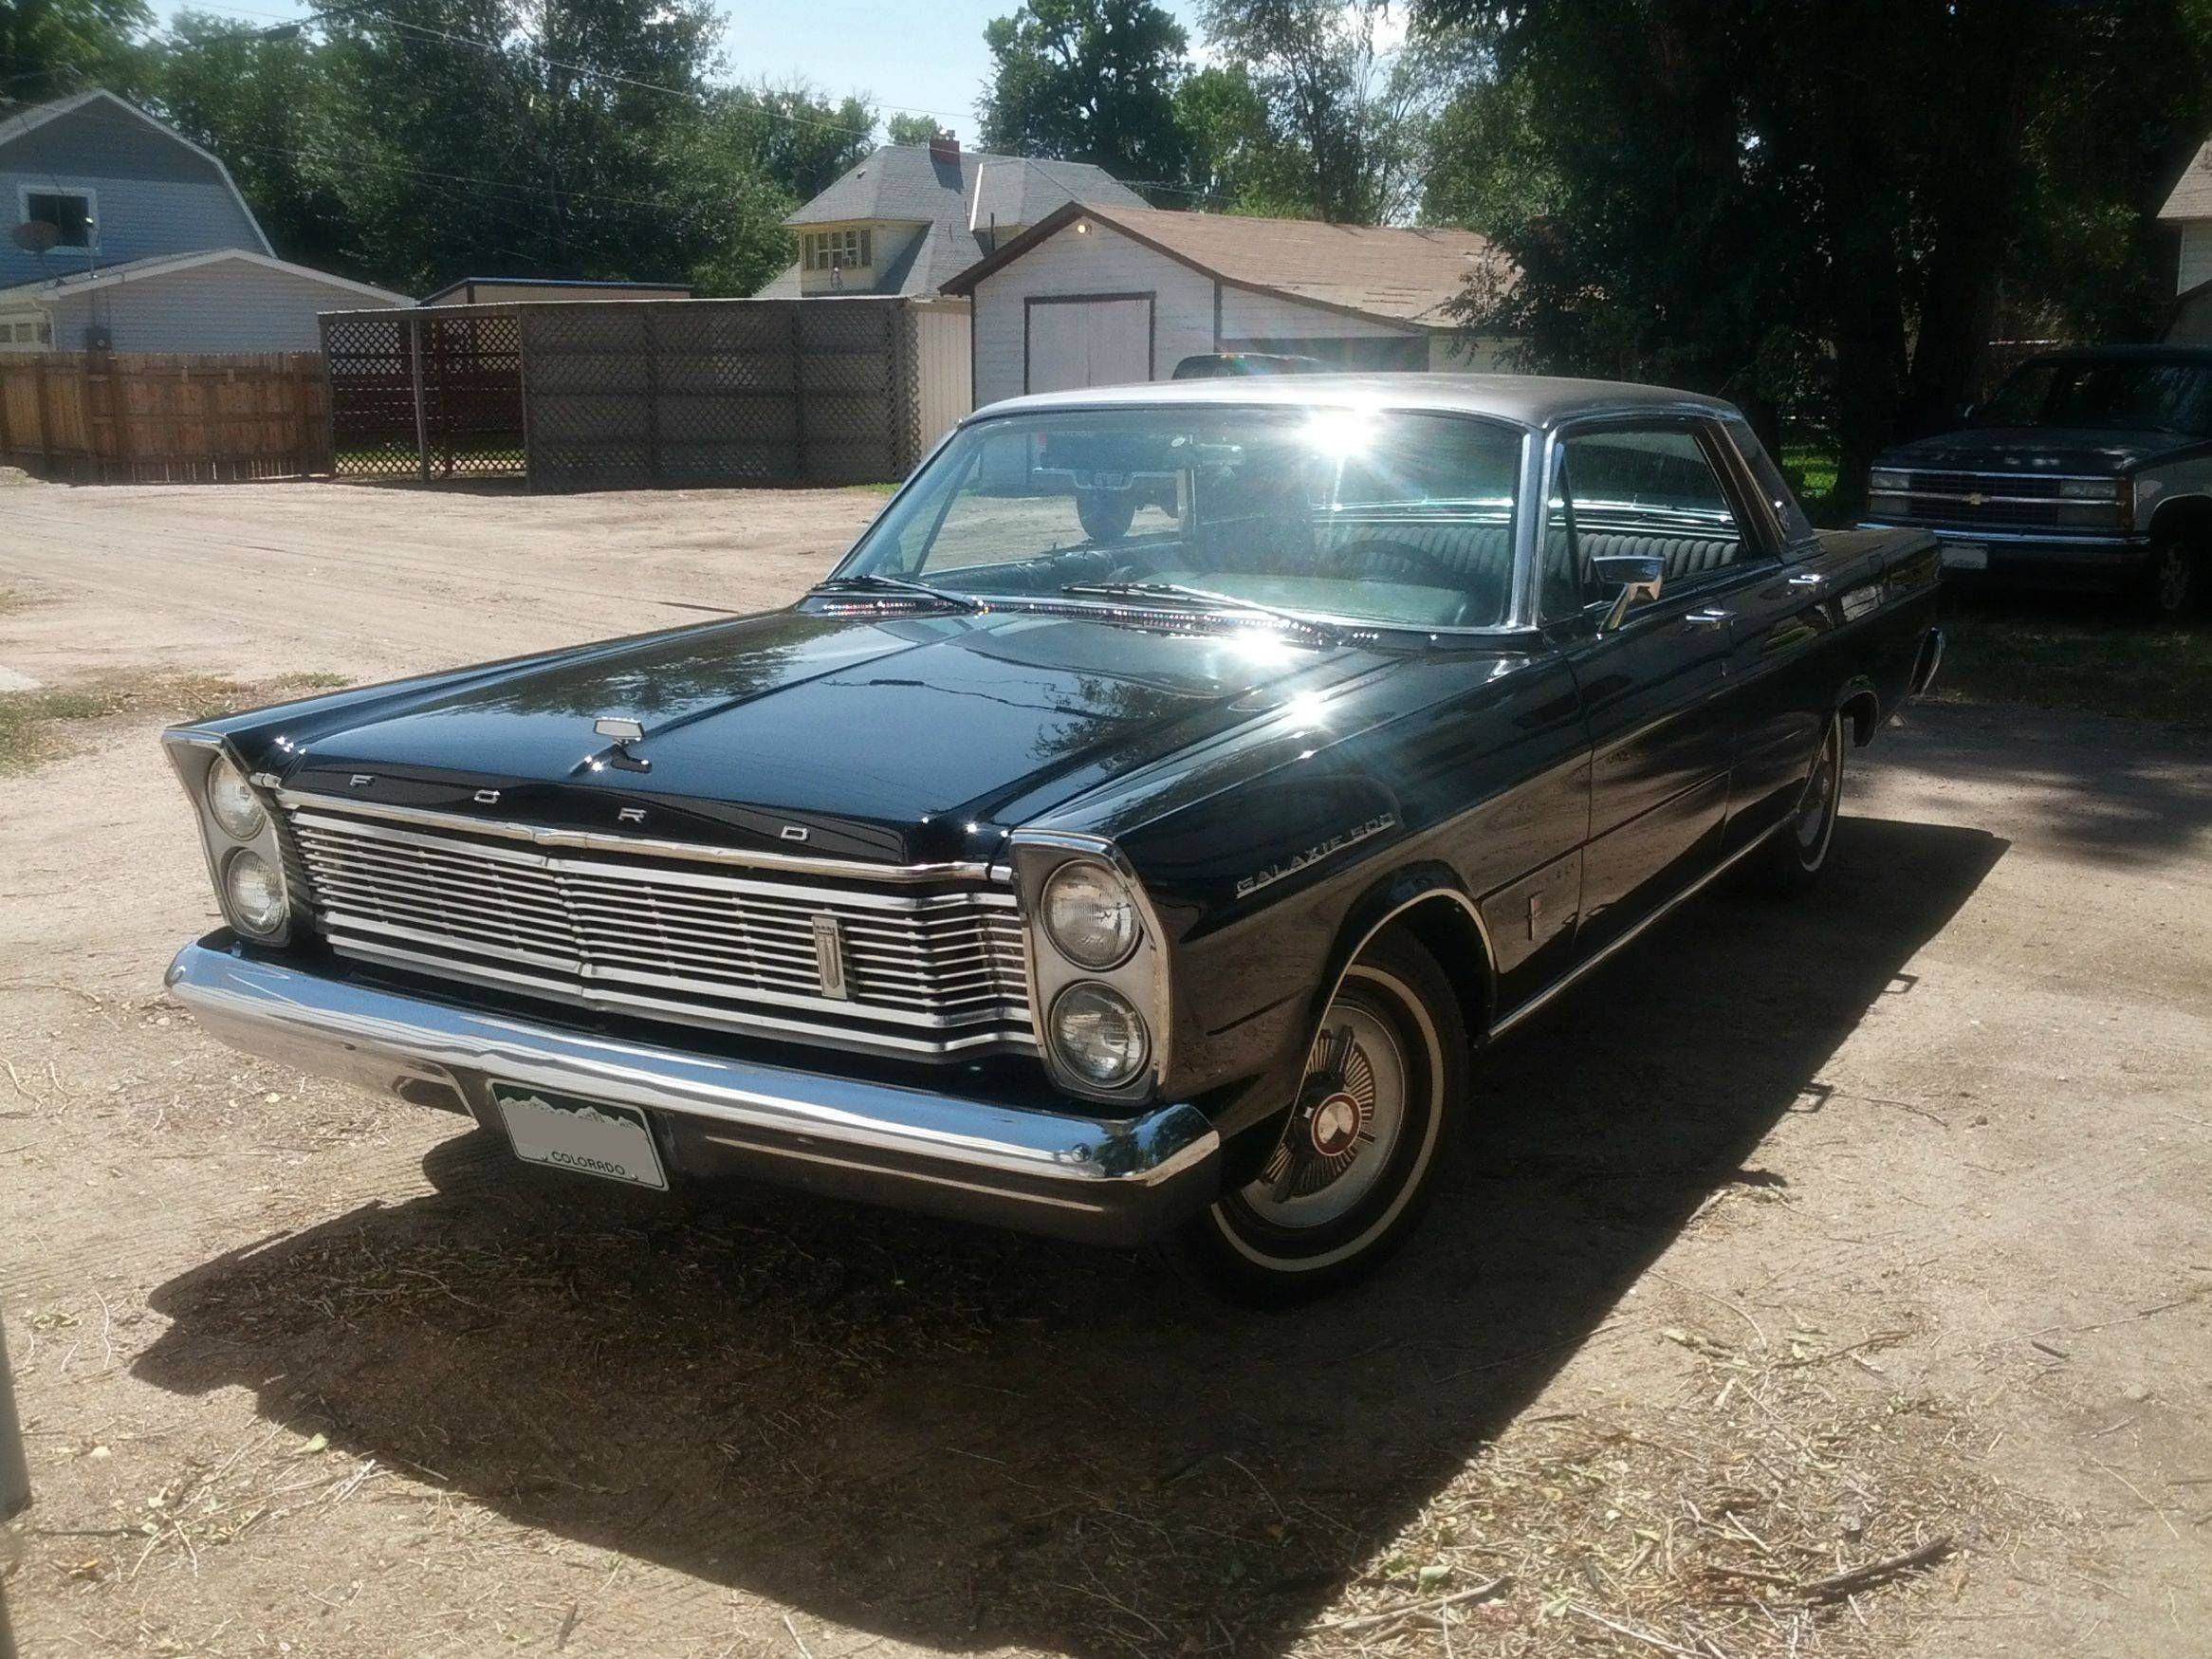 1965 Ford Galaxie 500 Ltd Ford Galaxie Ford Galaxie 500 Galaxie